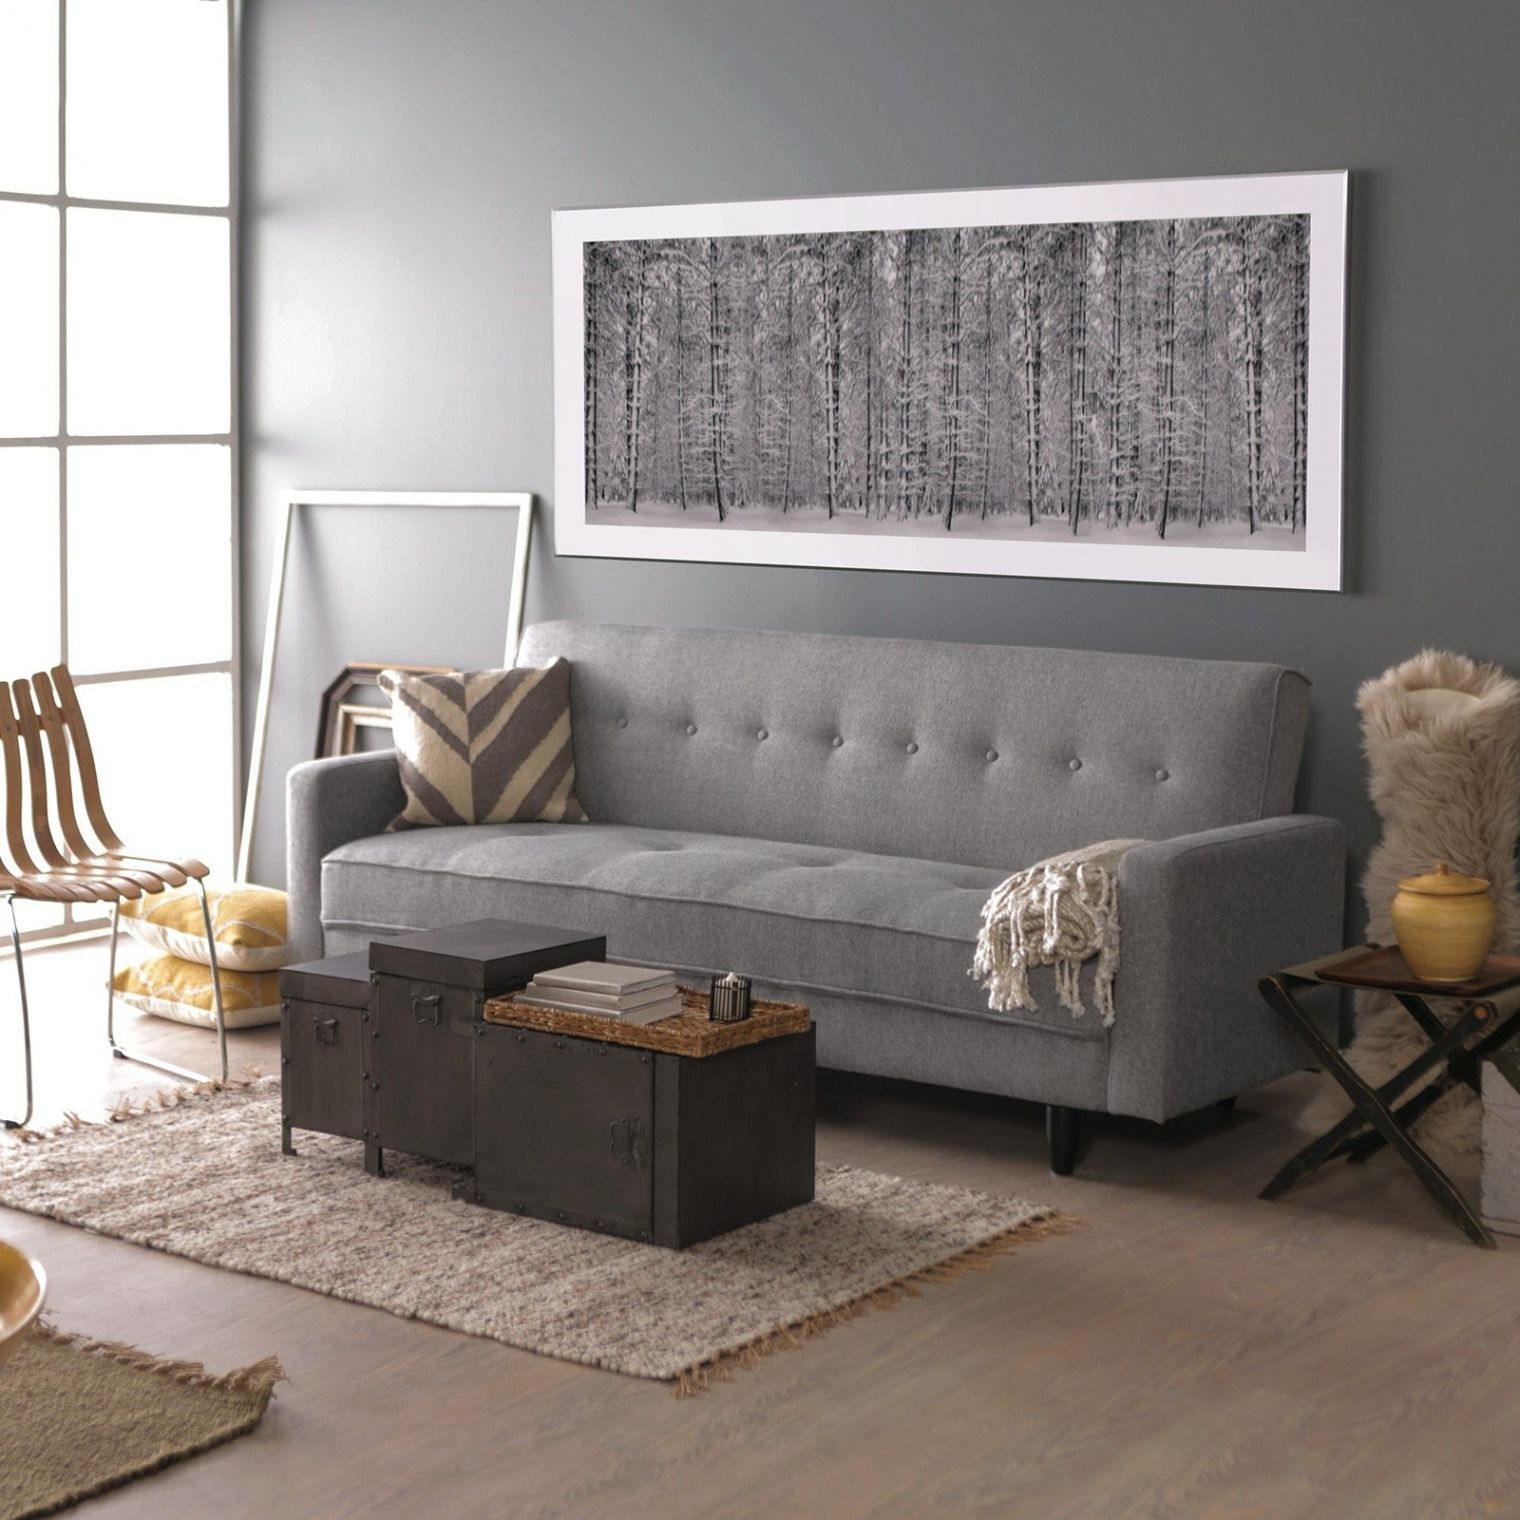 Most Durable Sofa Manufacturers Zanotta Bruce Preis Sofas Awesome Couches 21 And